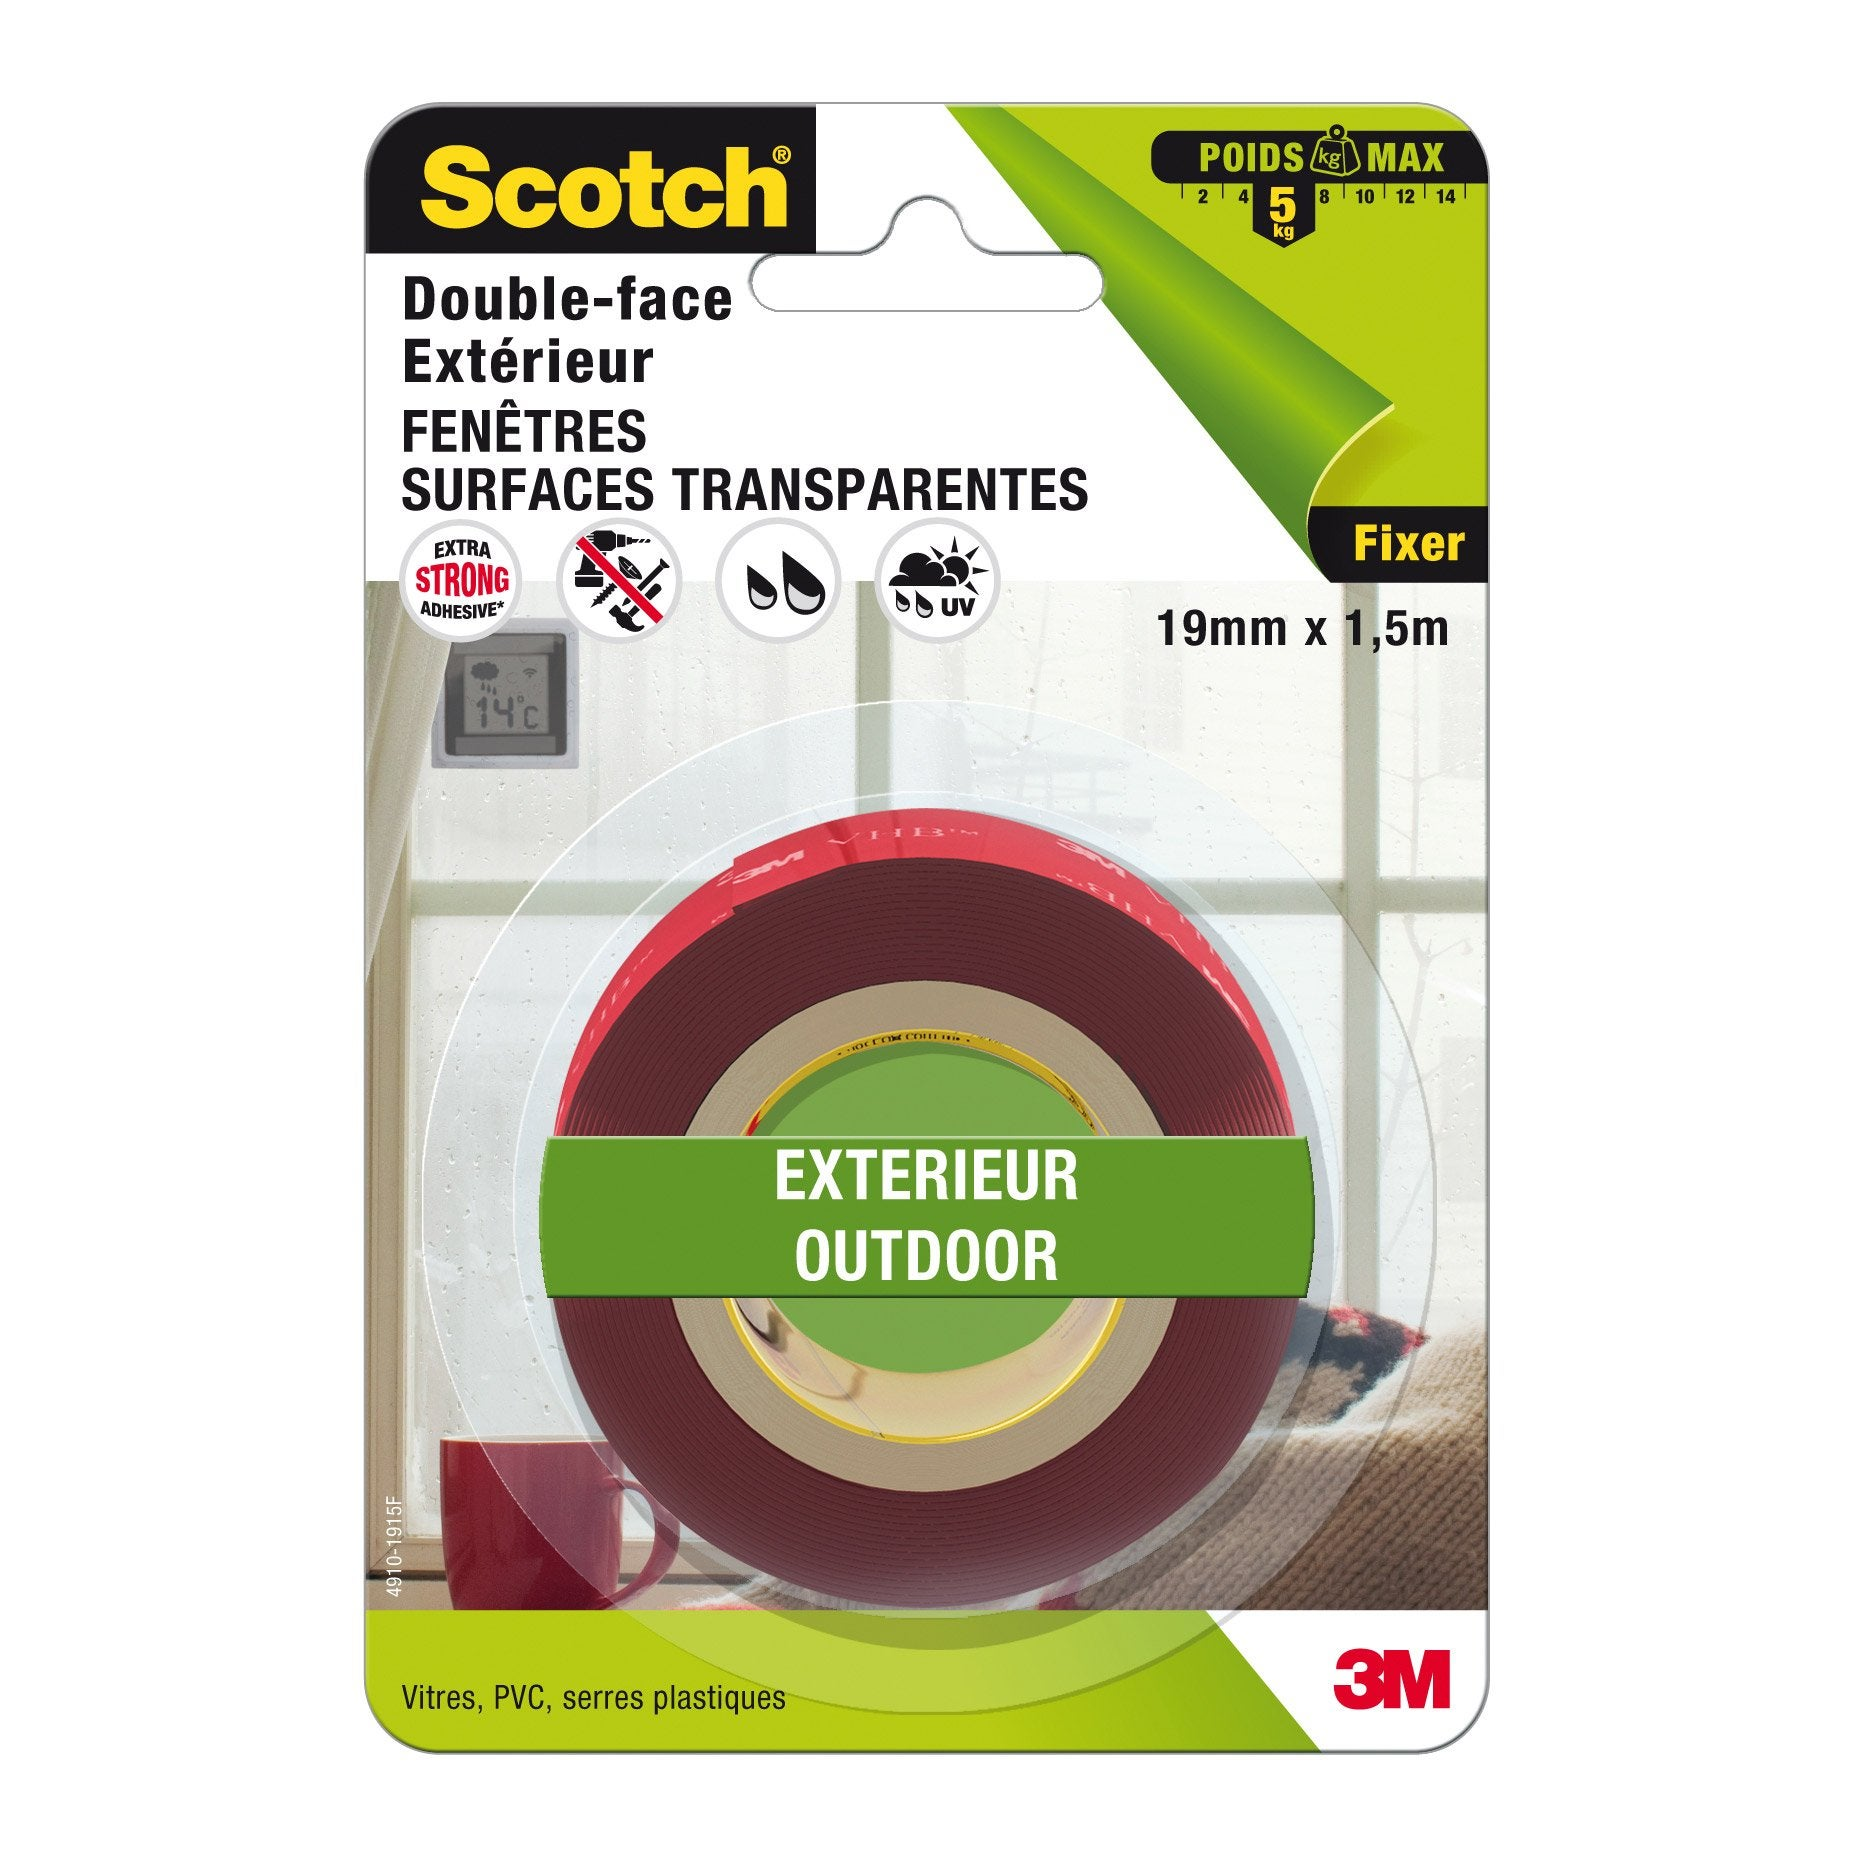 Rouleau Adhesif Double Face Exterieur Fenetres Scotch L 1 5 M X L 19 Mm Leroy Merlin